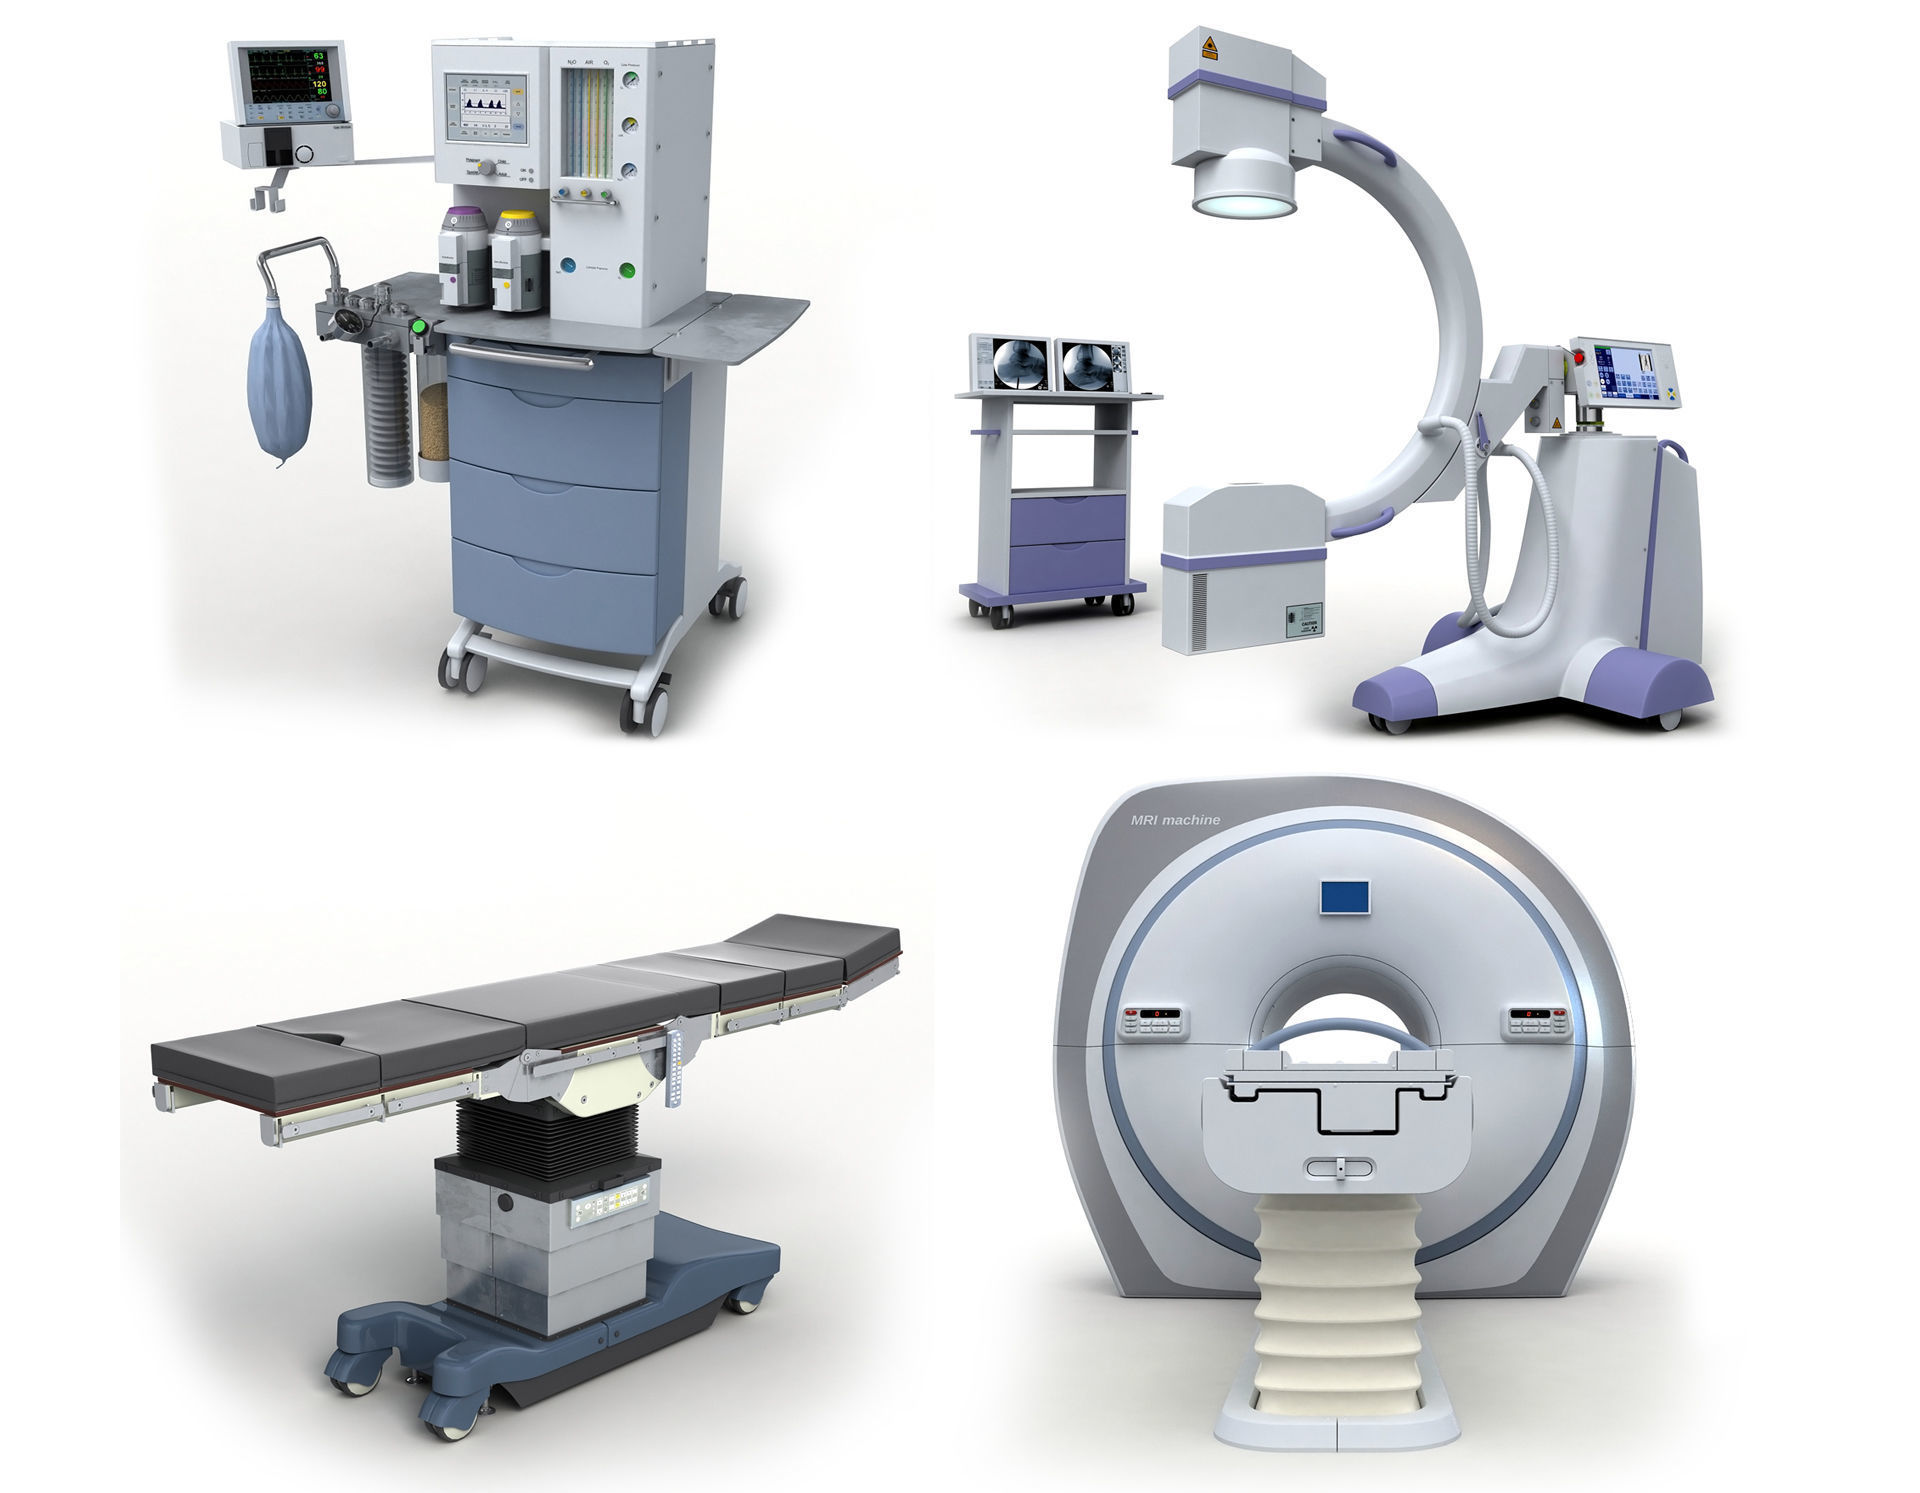 How to Buy Durable Medical Equipment from Medical Supply Store